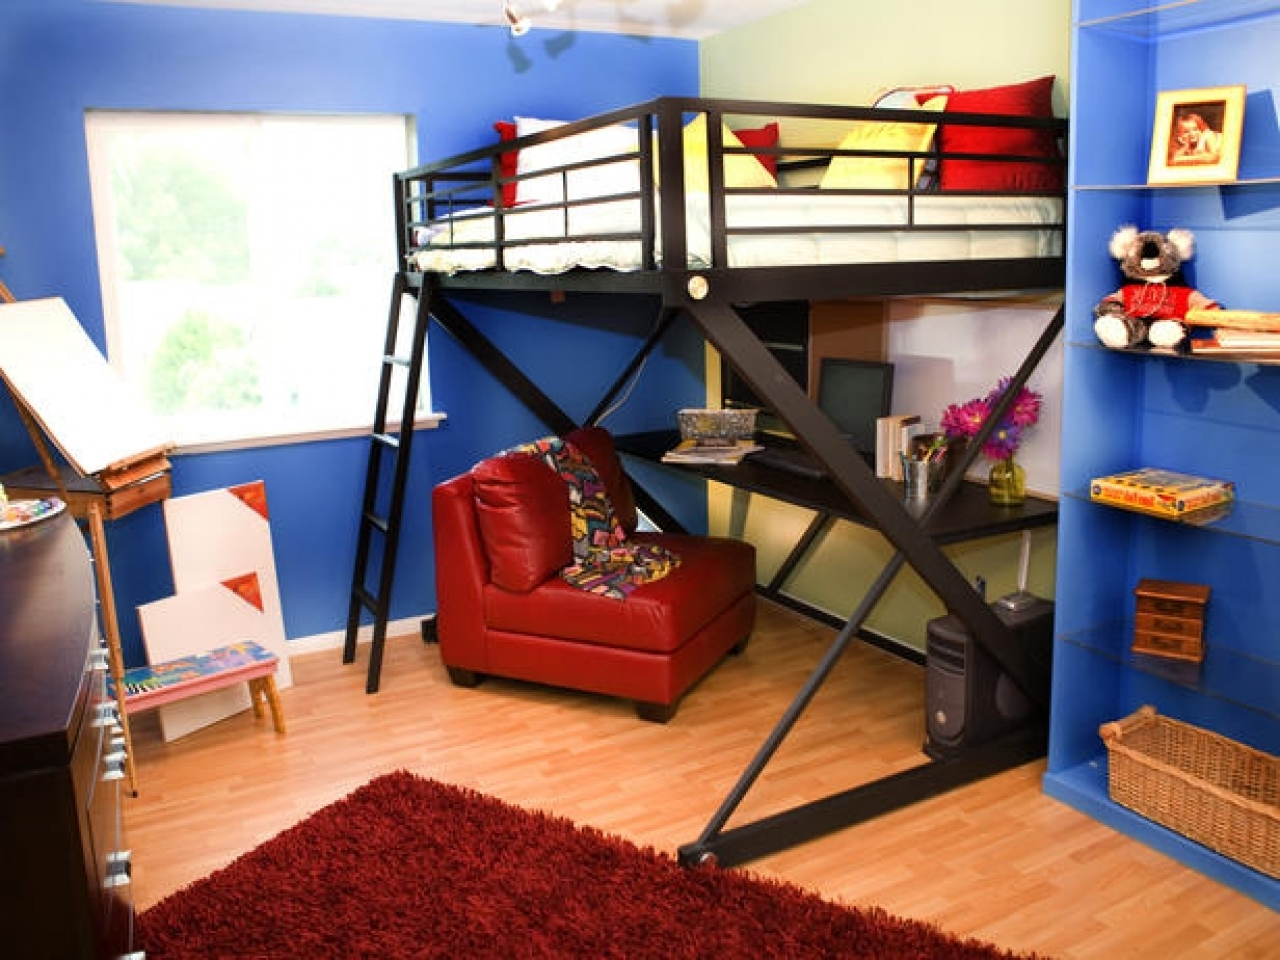 Studio Triple Corner Loft Bed | Make Bunk Beds | Bunk Beds for Small Rooms